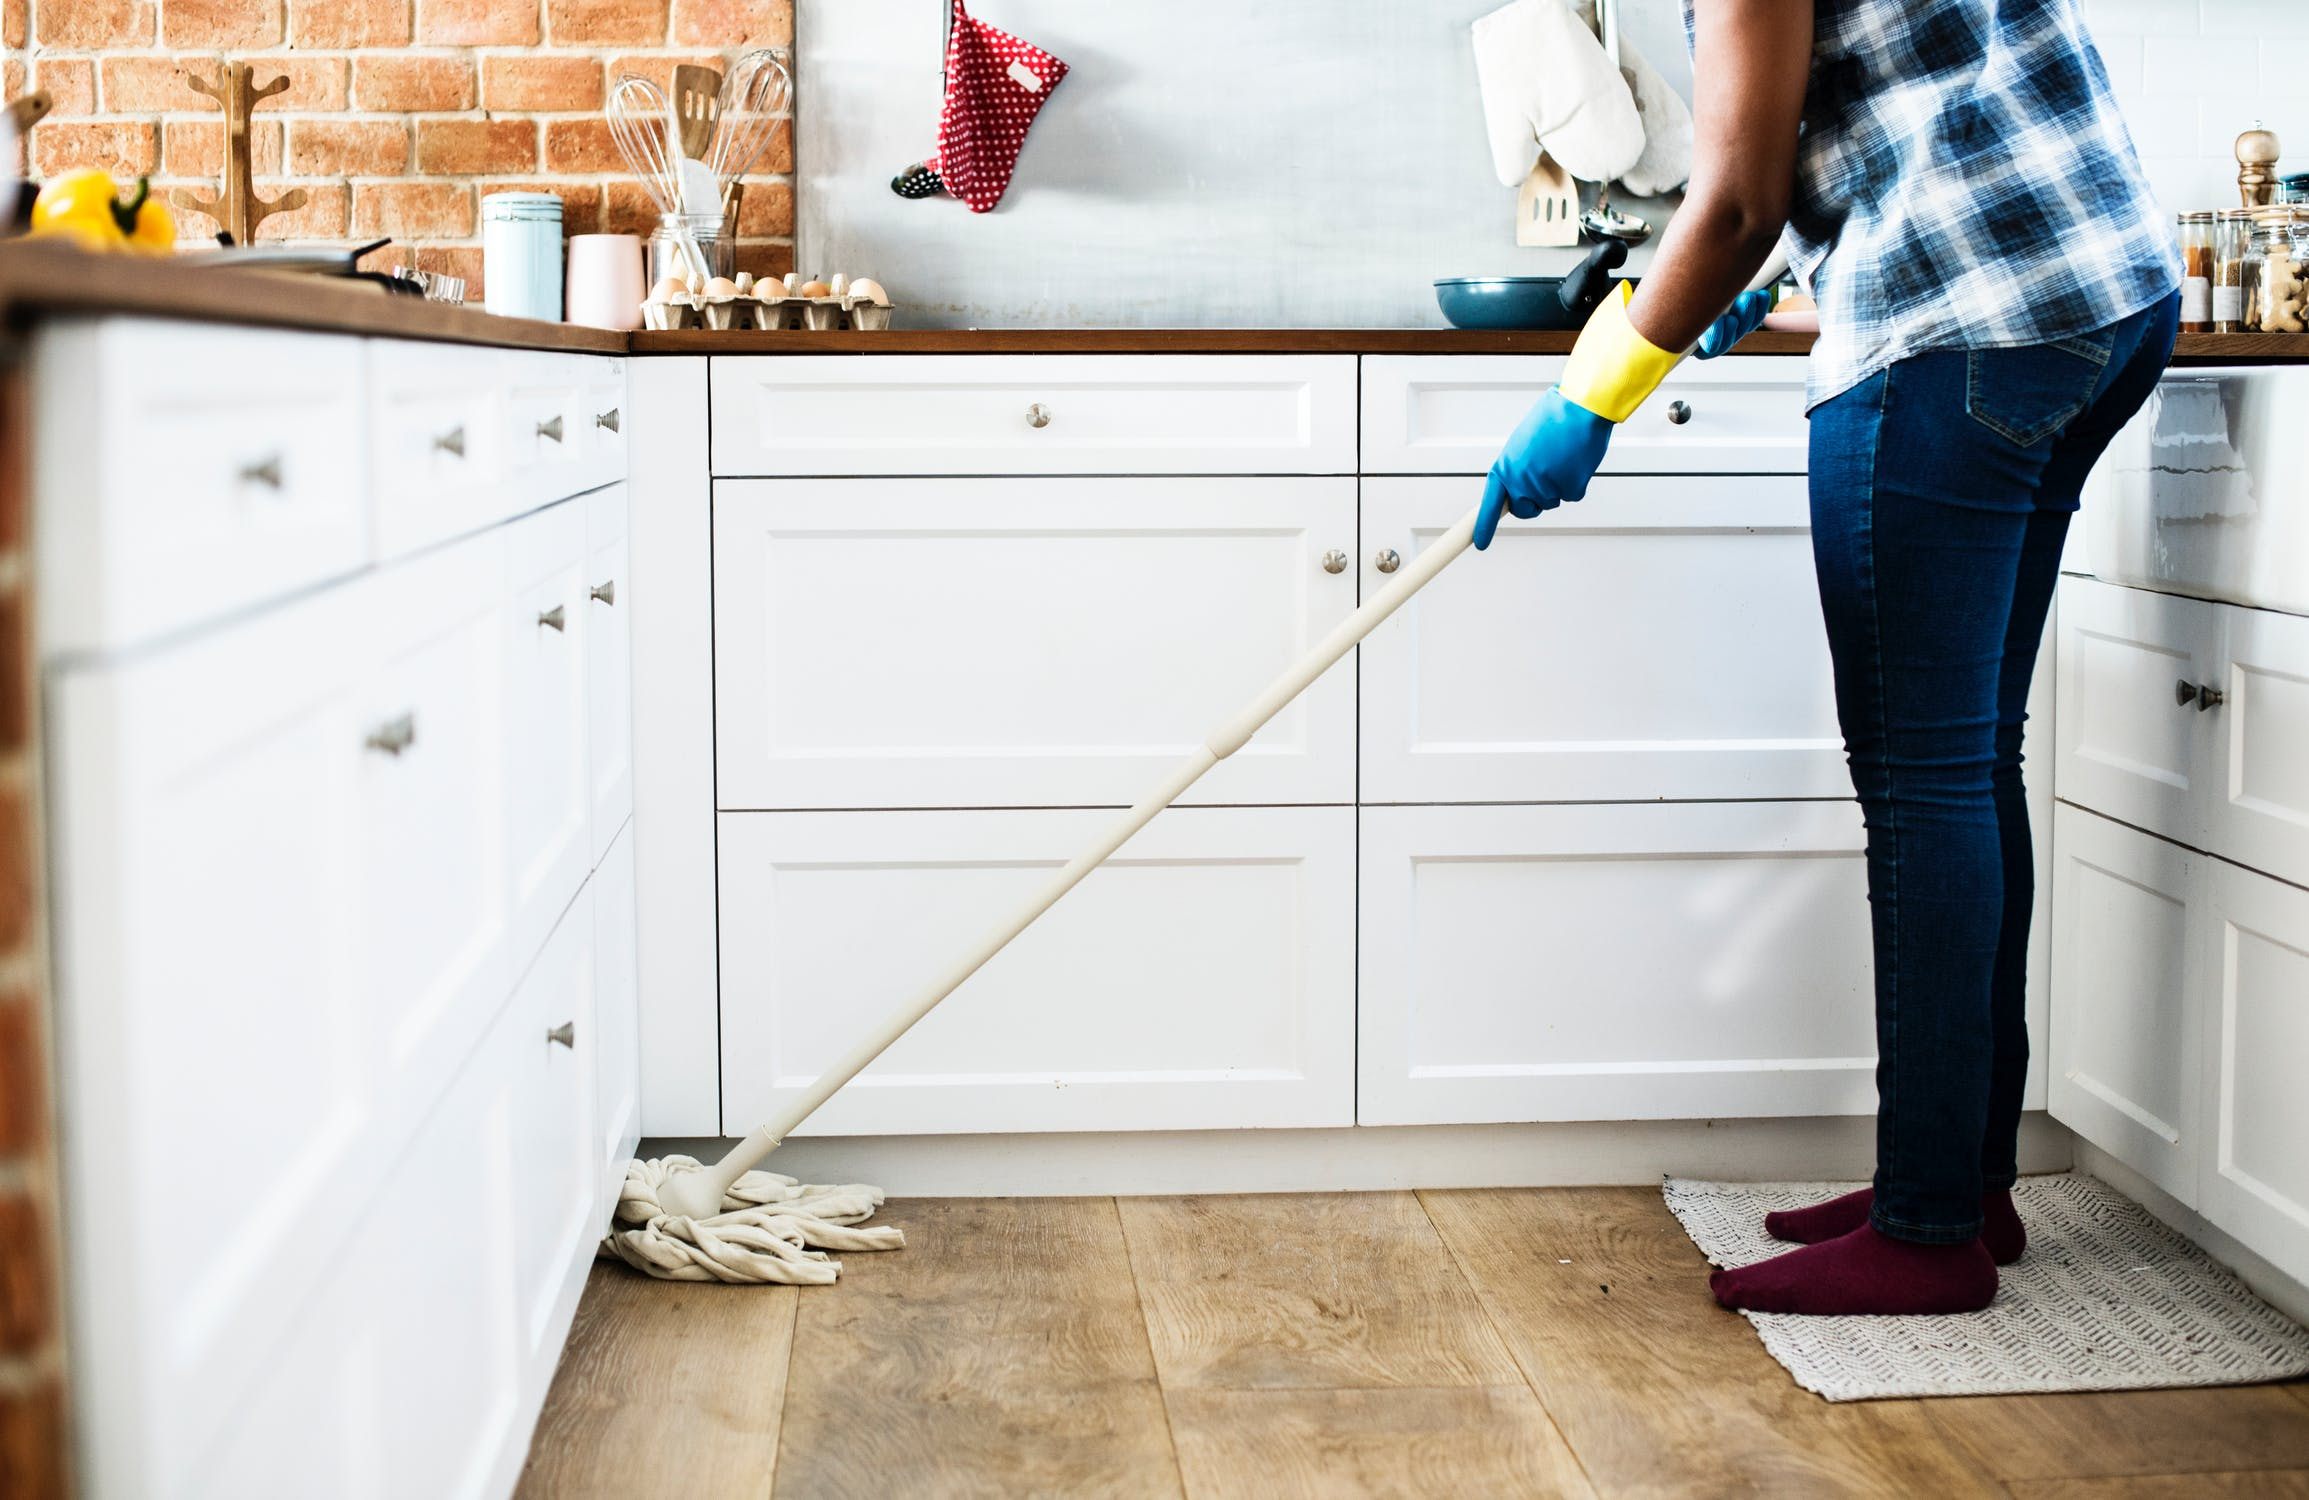 How Hiring a Professional Cleaning Service for your Home Promotes Well-Being